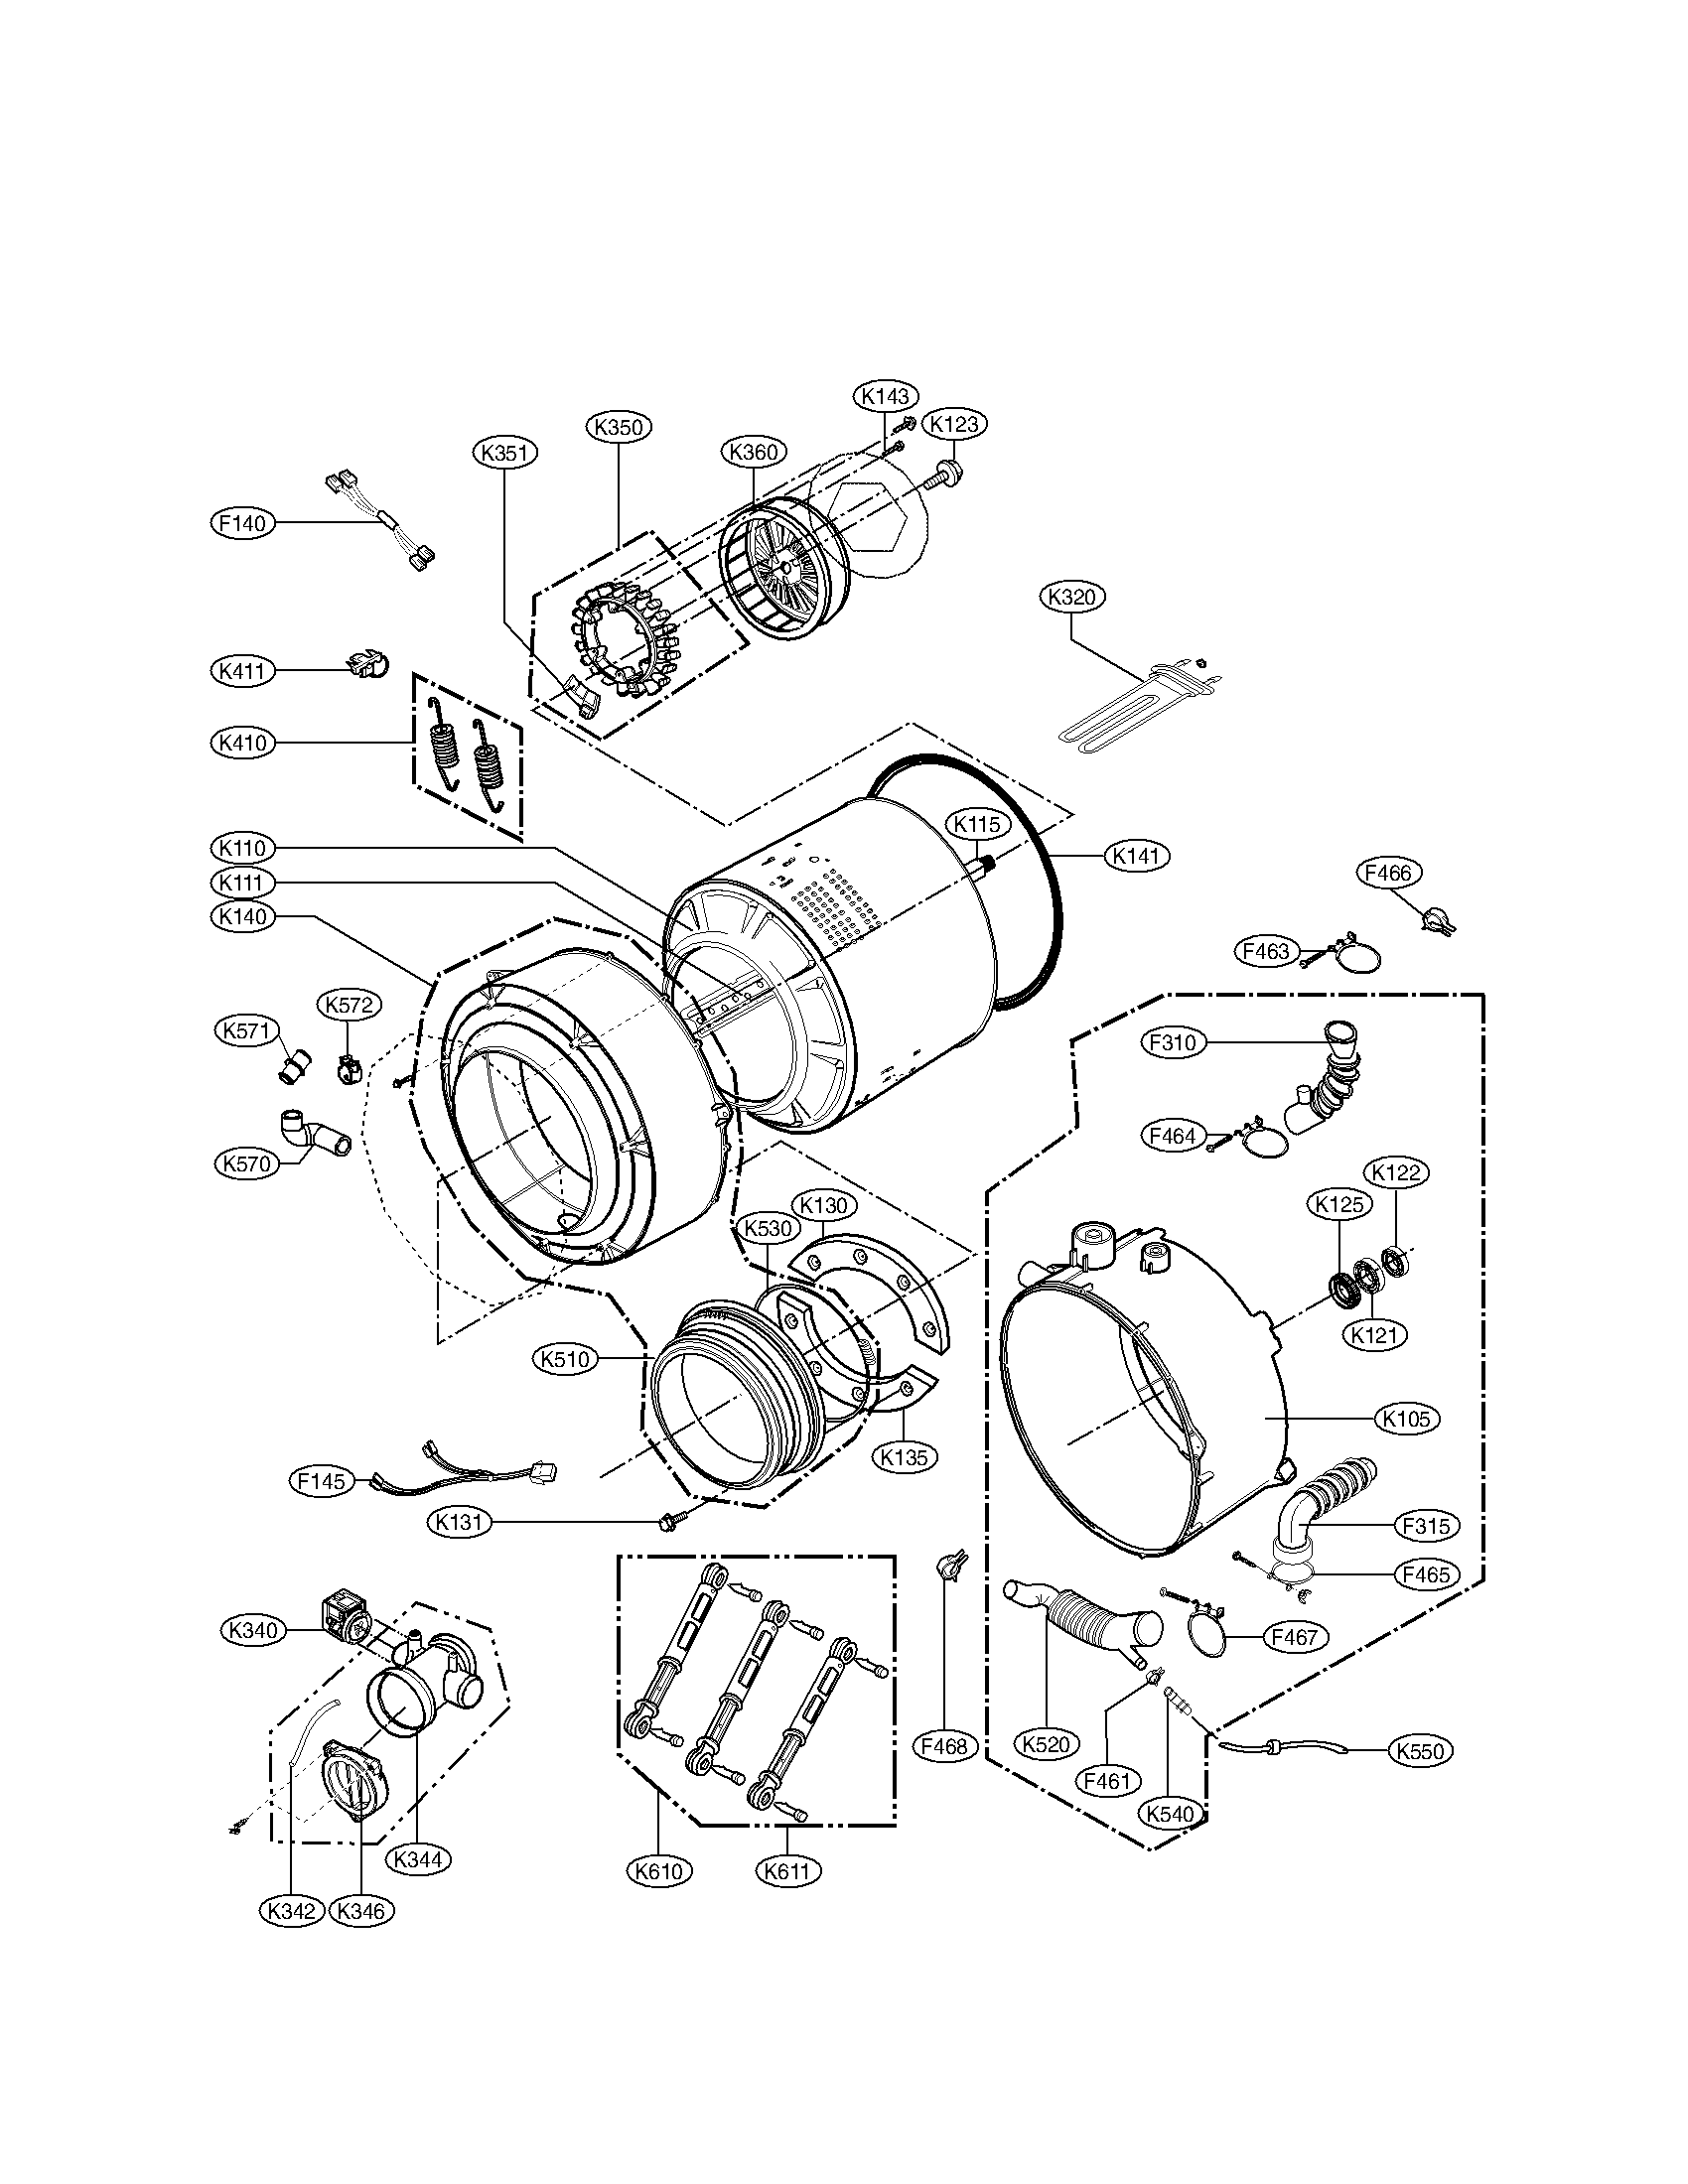 Kenmore 796 800 Washer Drain Pump And Motor Assembly